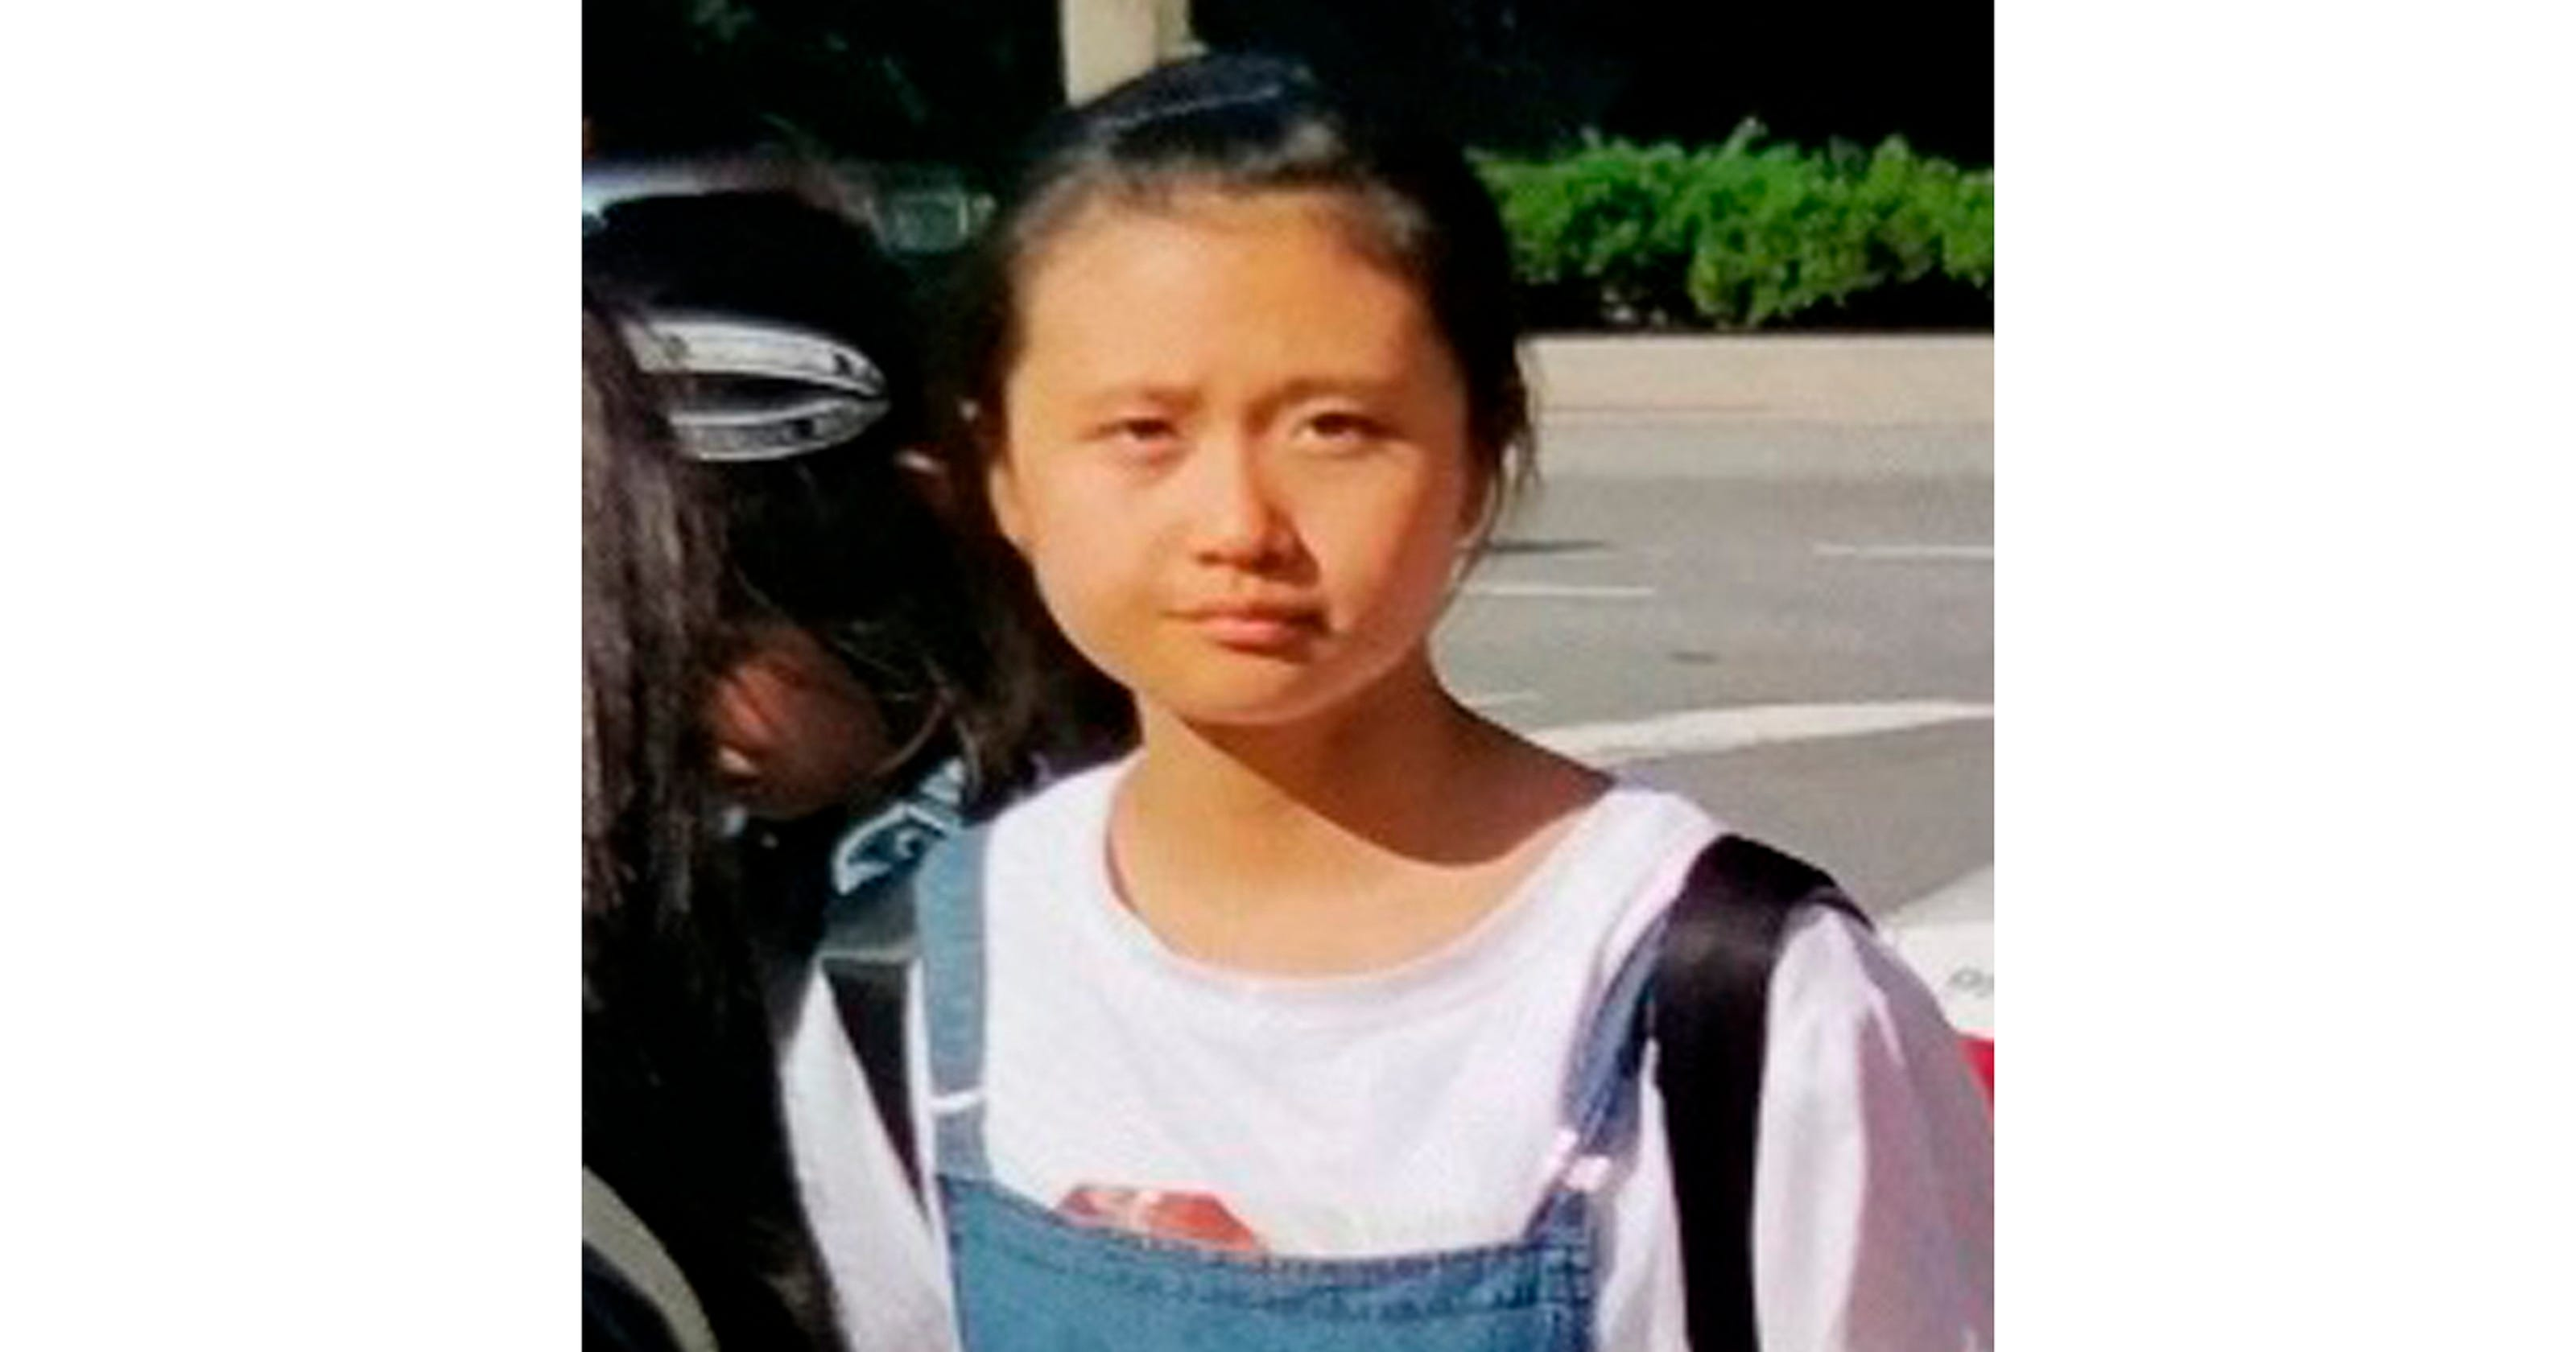 Amber Alert: 12-year-old girl found safe in NYC after